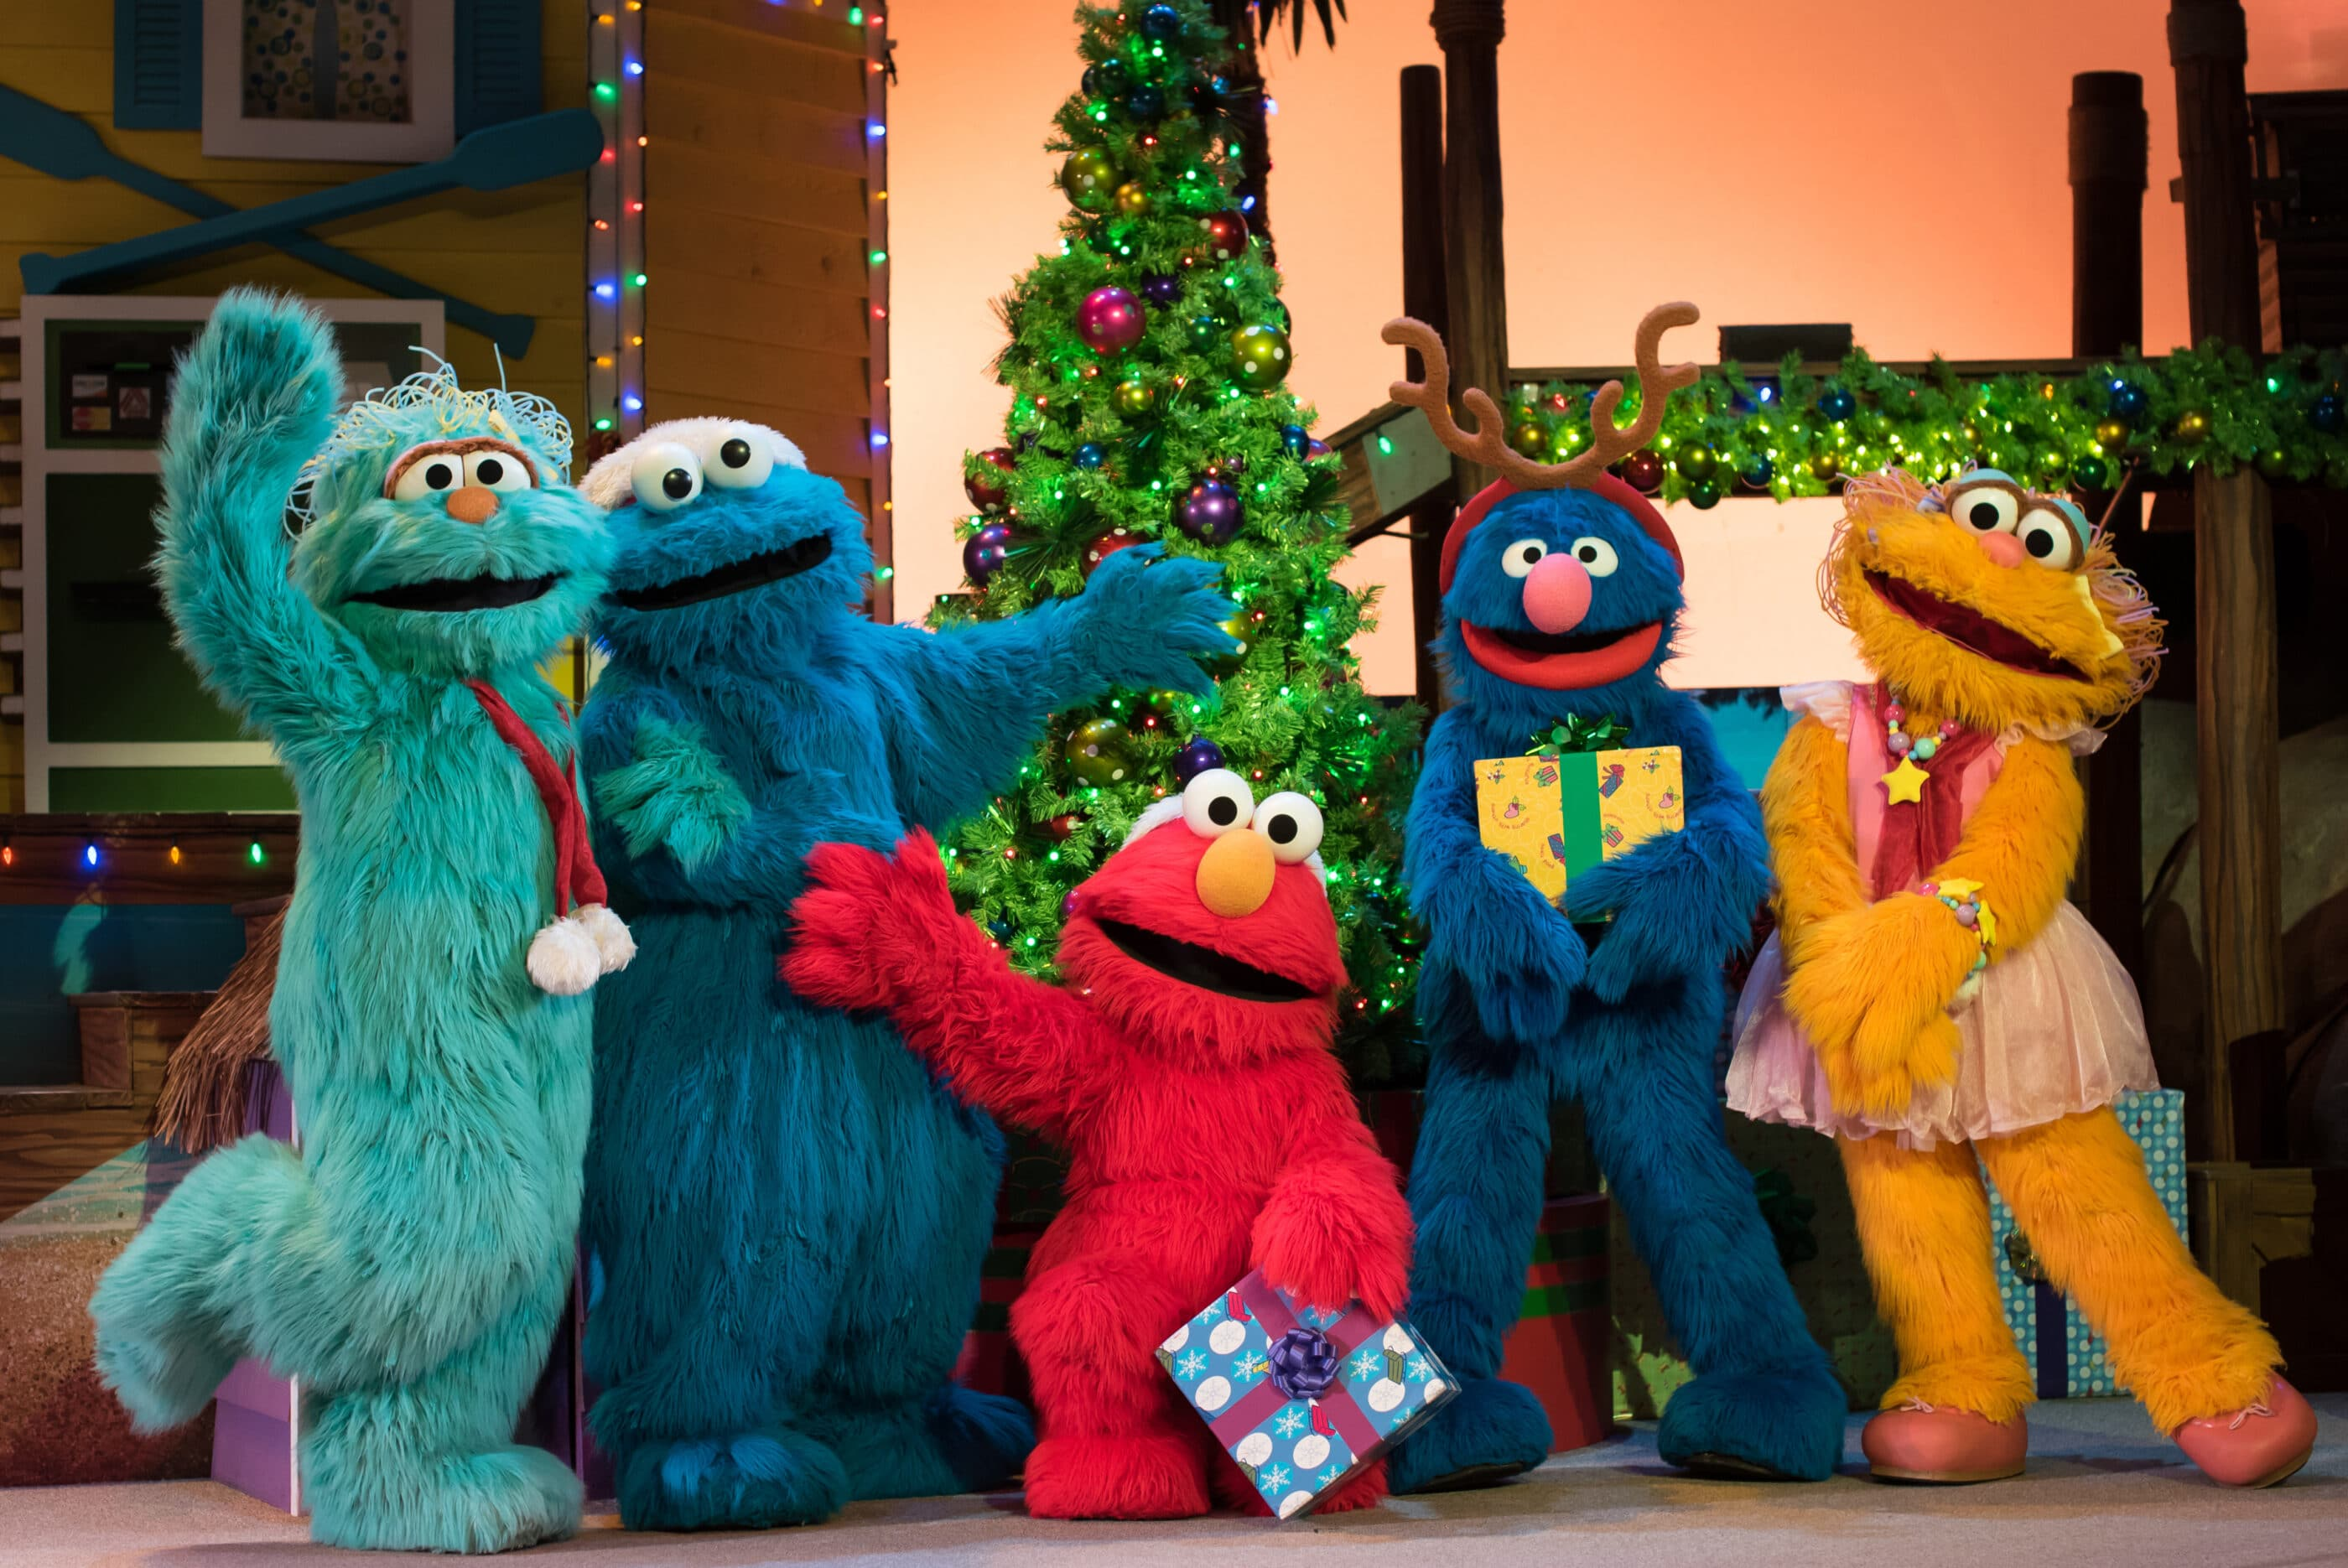 Elmo and friends hold presents in front of a Christmas tree.